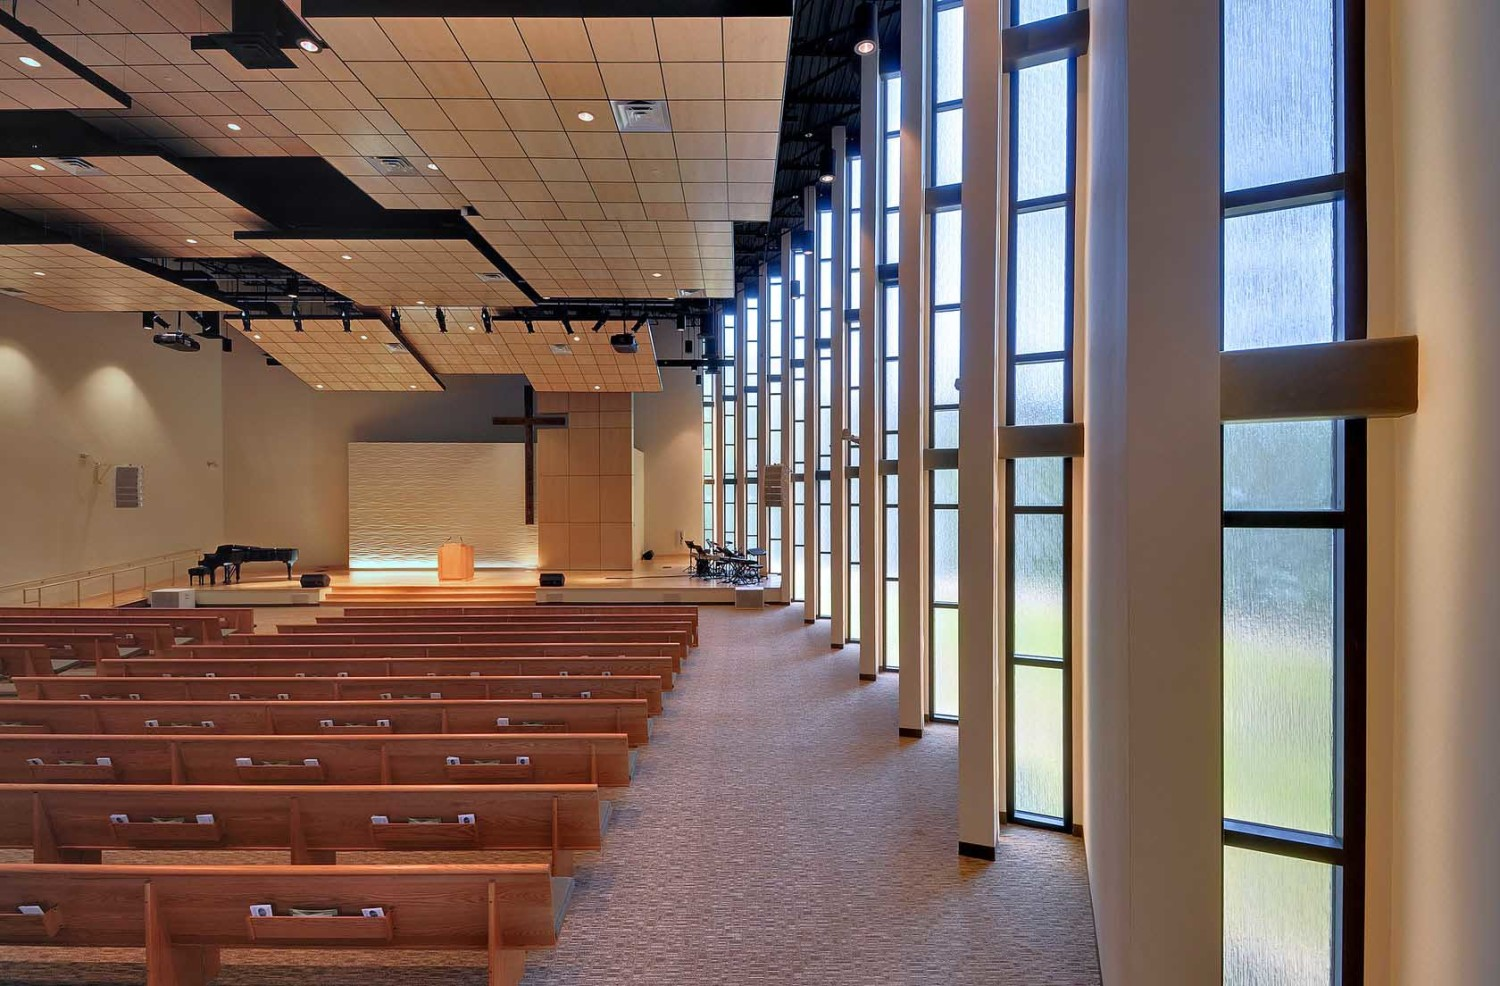 Korean Presbyterian Church di New Jersey, Amerika karya Arcari dan Iovino Architects (Sumber: architizer)